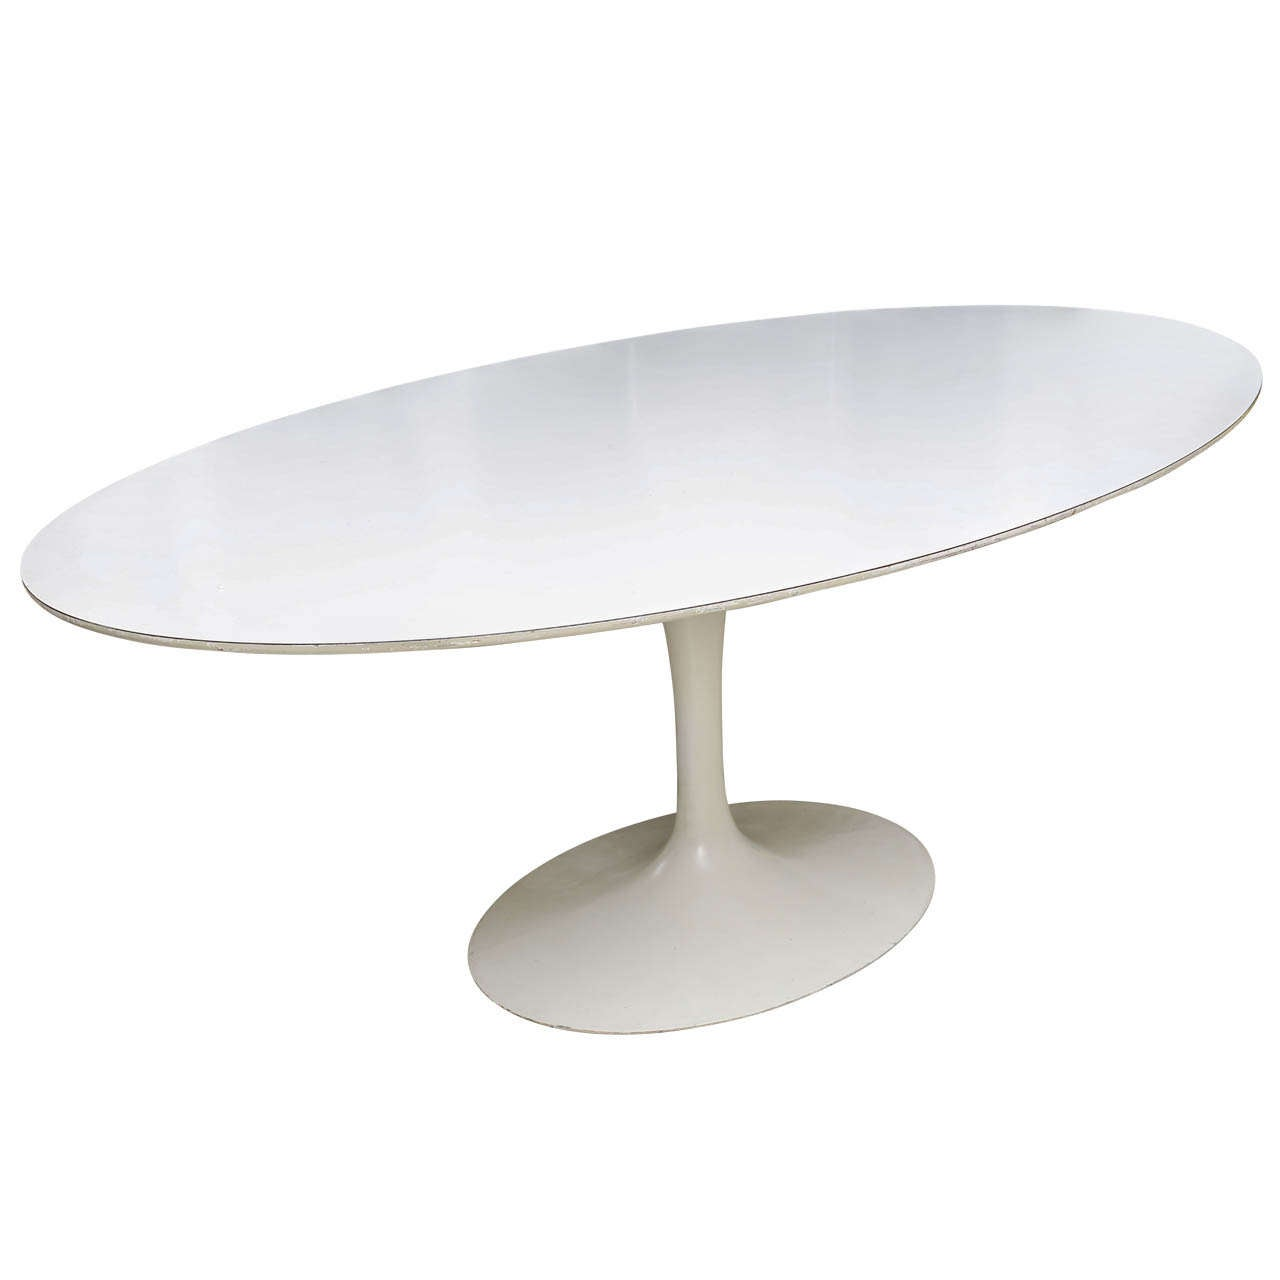 Vintage saarinen tulip dining table at 1stdibs for Tulip dining table